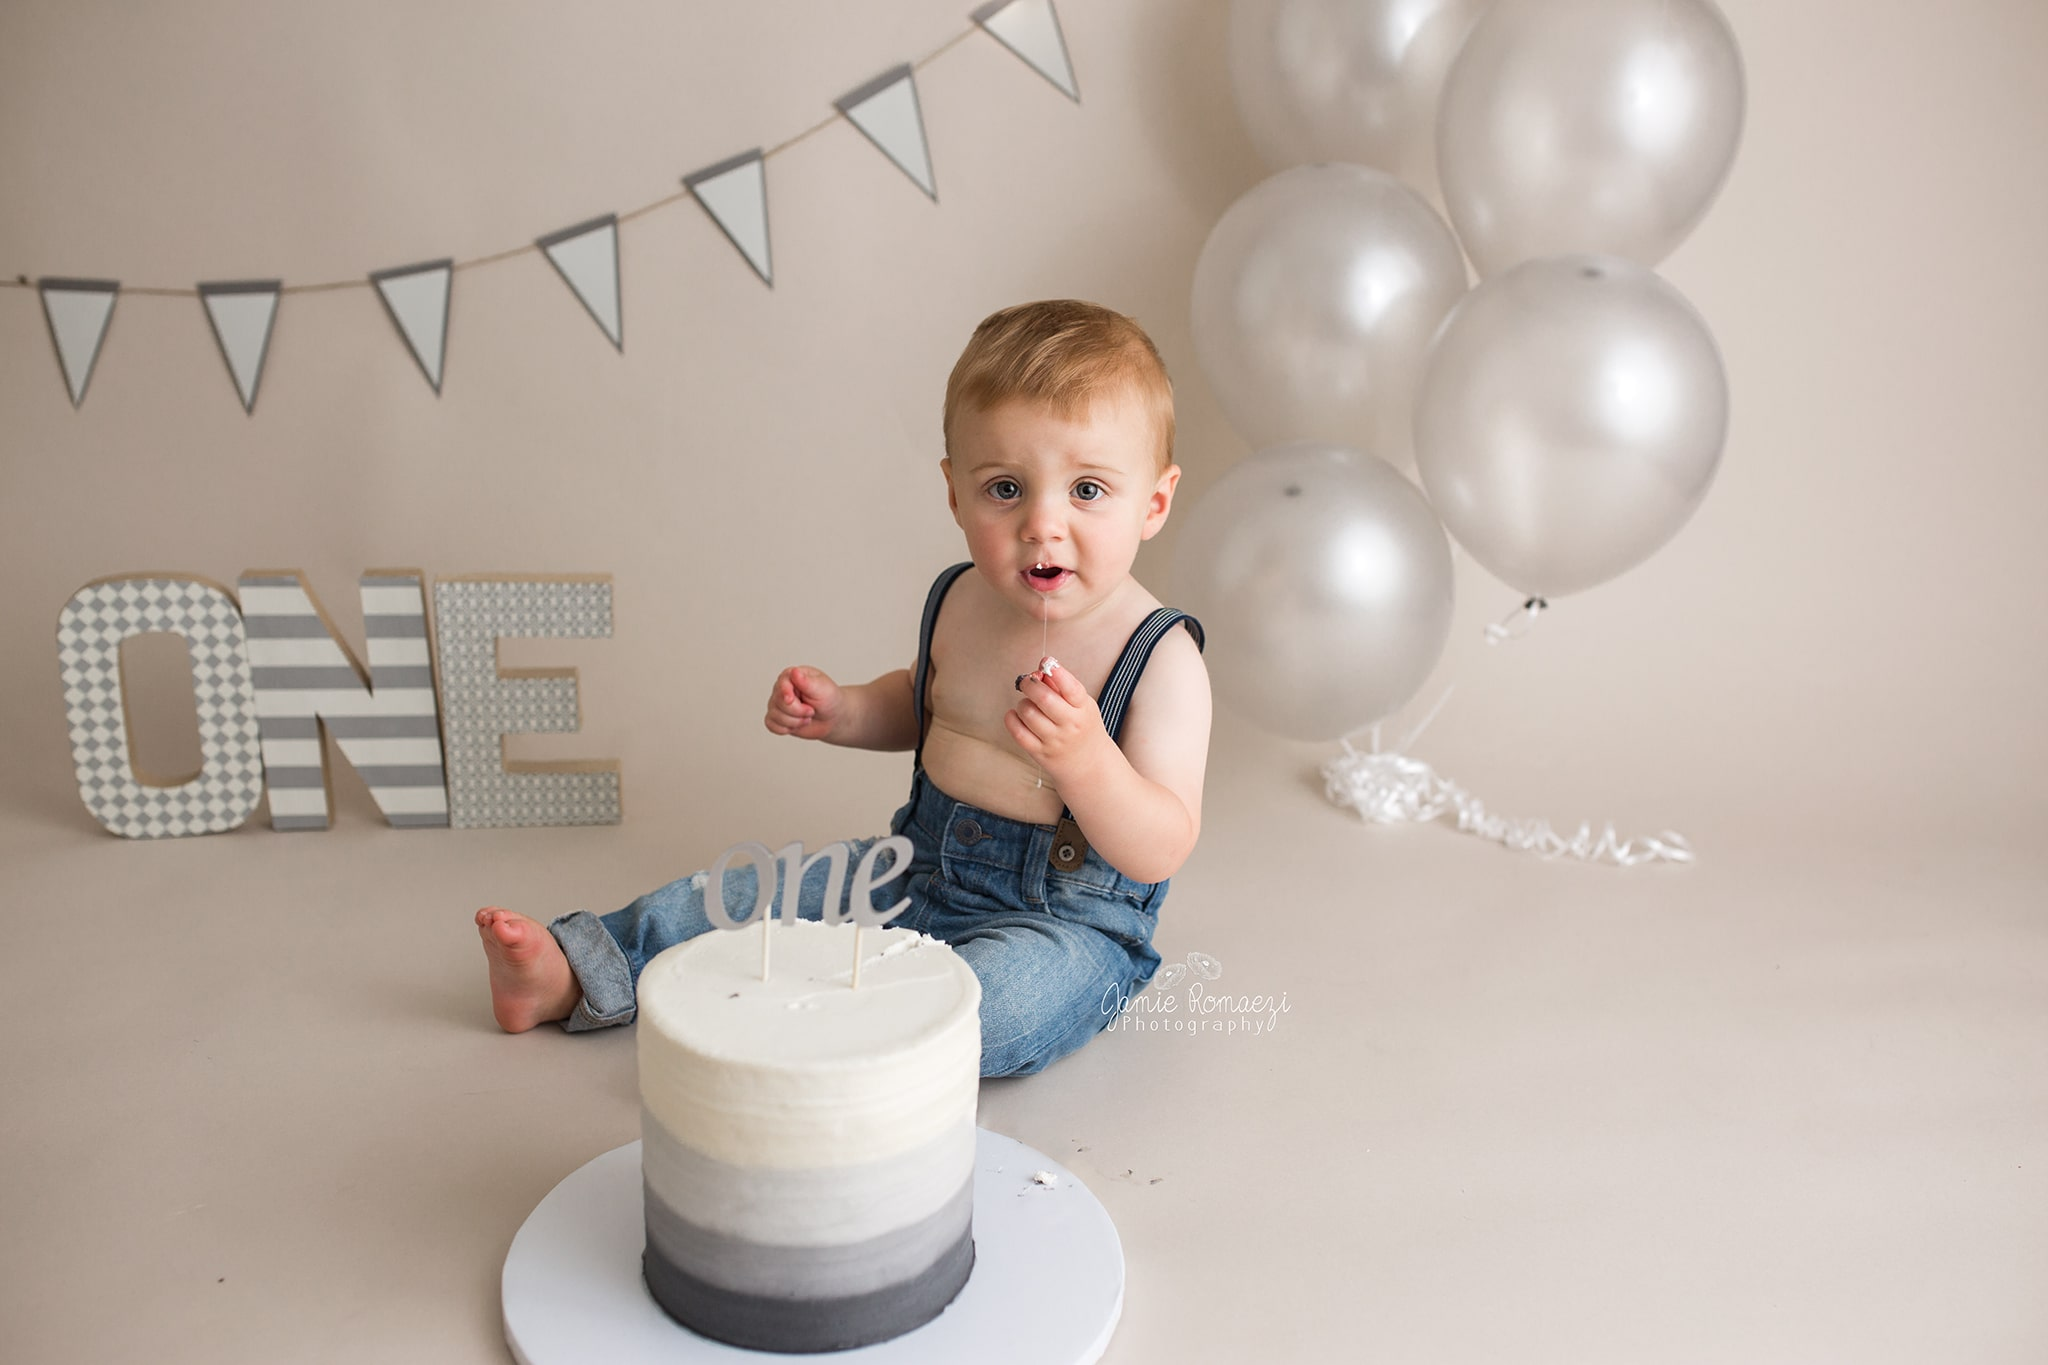 Gray Ombre themed first birthday cake smash session with balloons